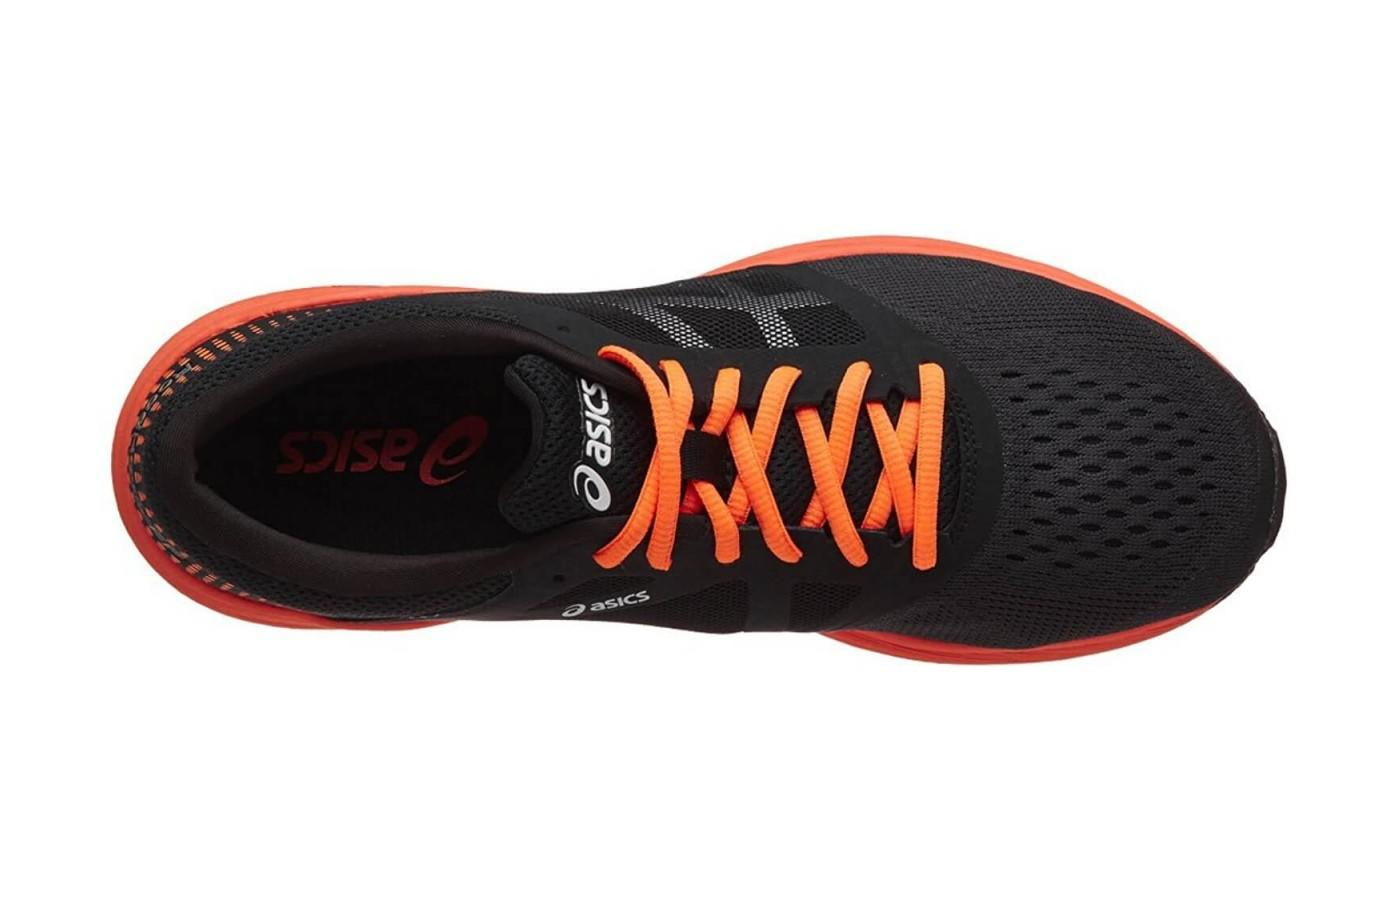 The upper is breathable and the shoe is extremely lightweight